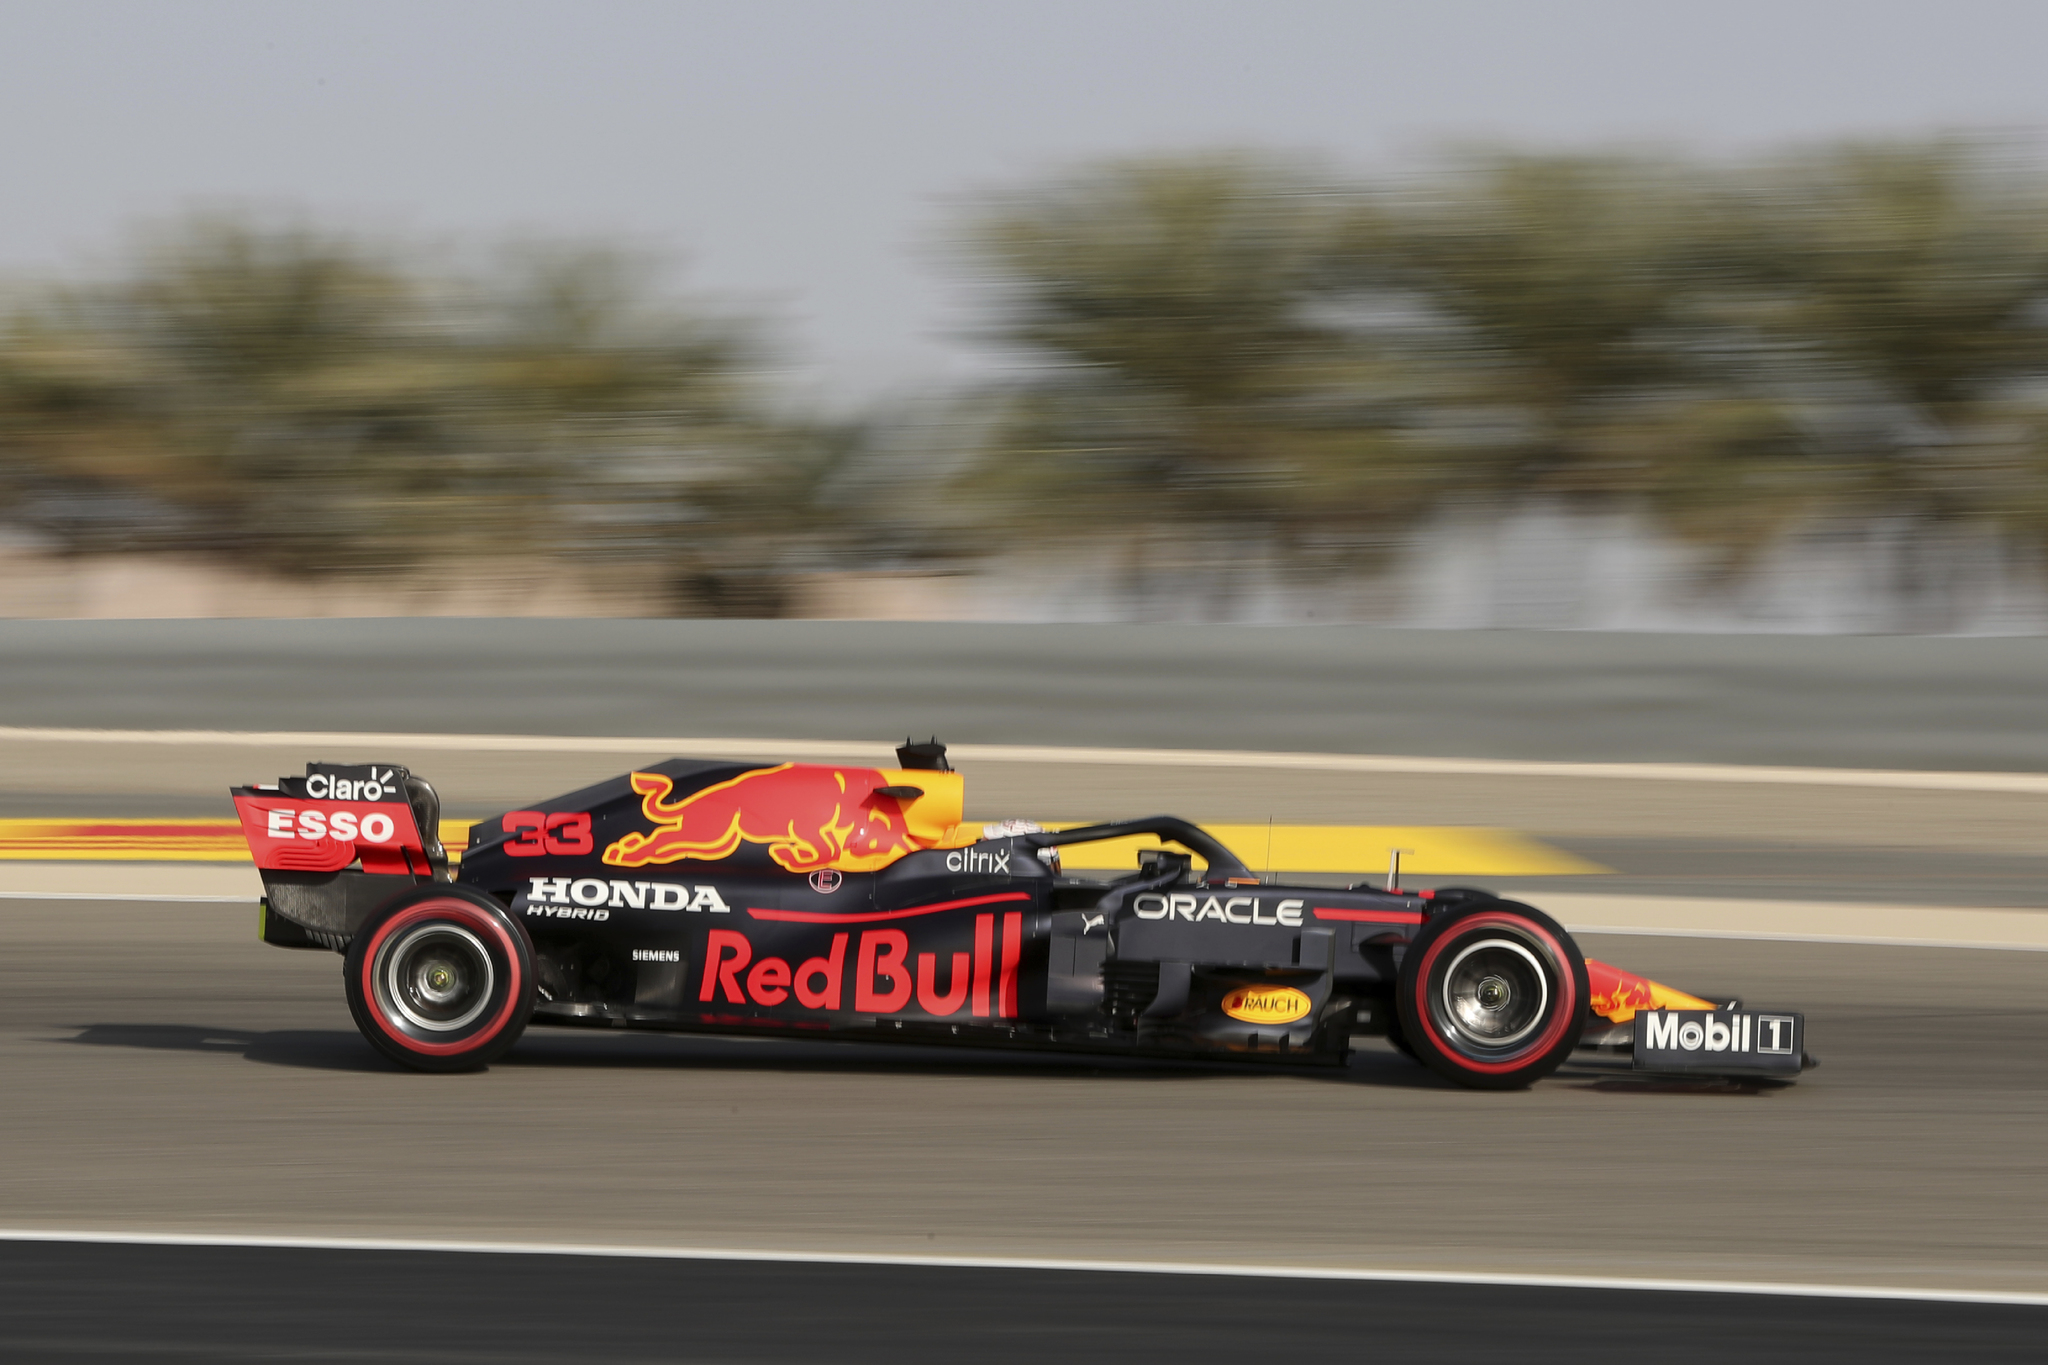 Red Bull driver Max lt;HIT gt;Verstappen lt;/HIT gt; of the Netherlands steers his car during the third free practice at the Formula One Bahrain International Circuit in Sakhir, Bahrain, Saturday, March 27, 2021. The Bahrain Formula One Grand Prix will take place on Sunday. (AP Photo/Kamran Jebreili)